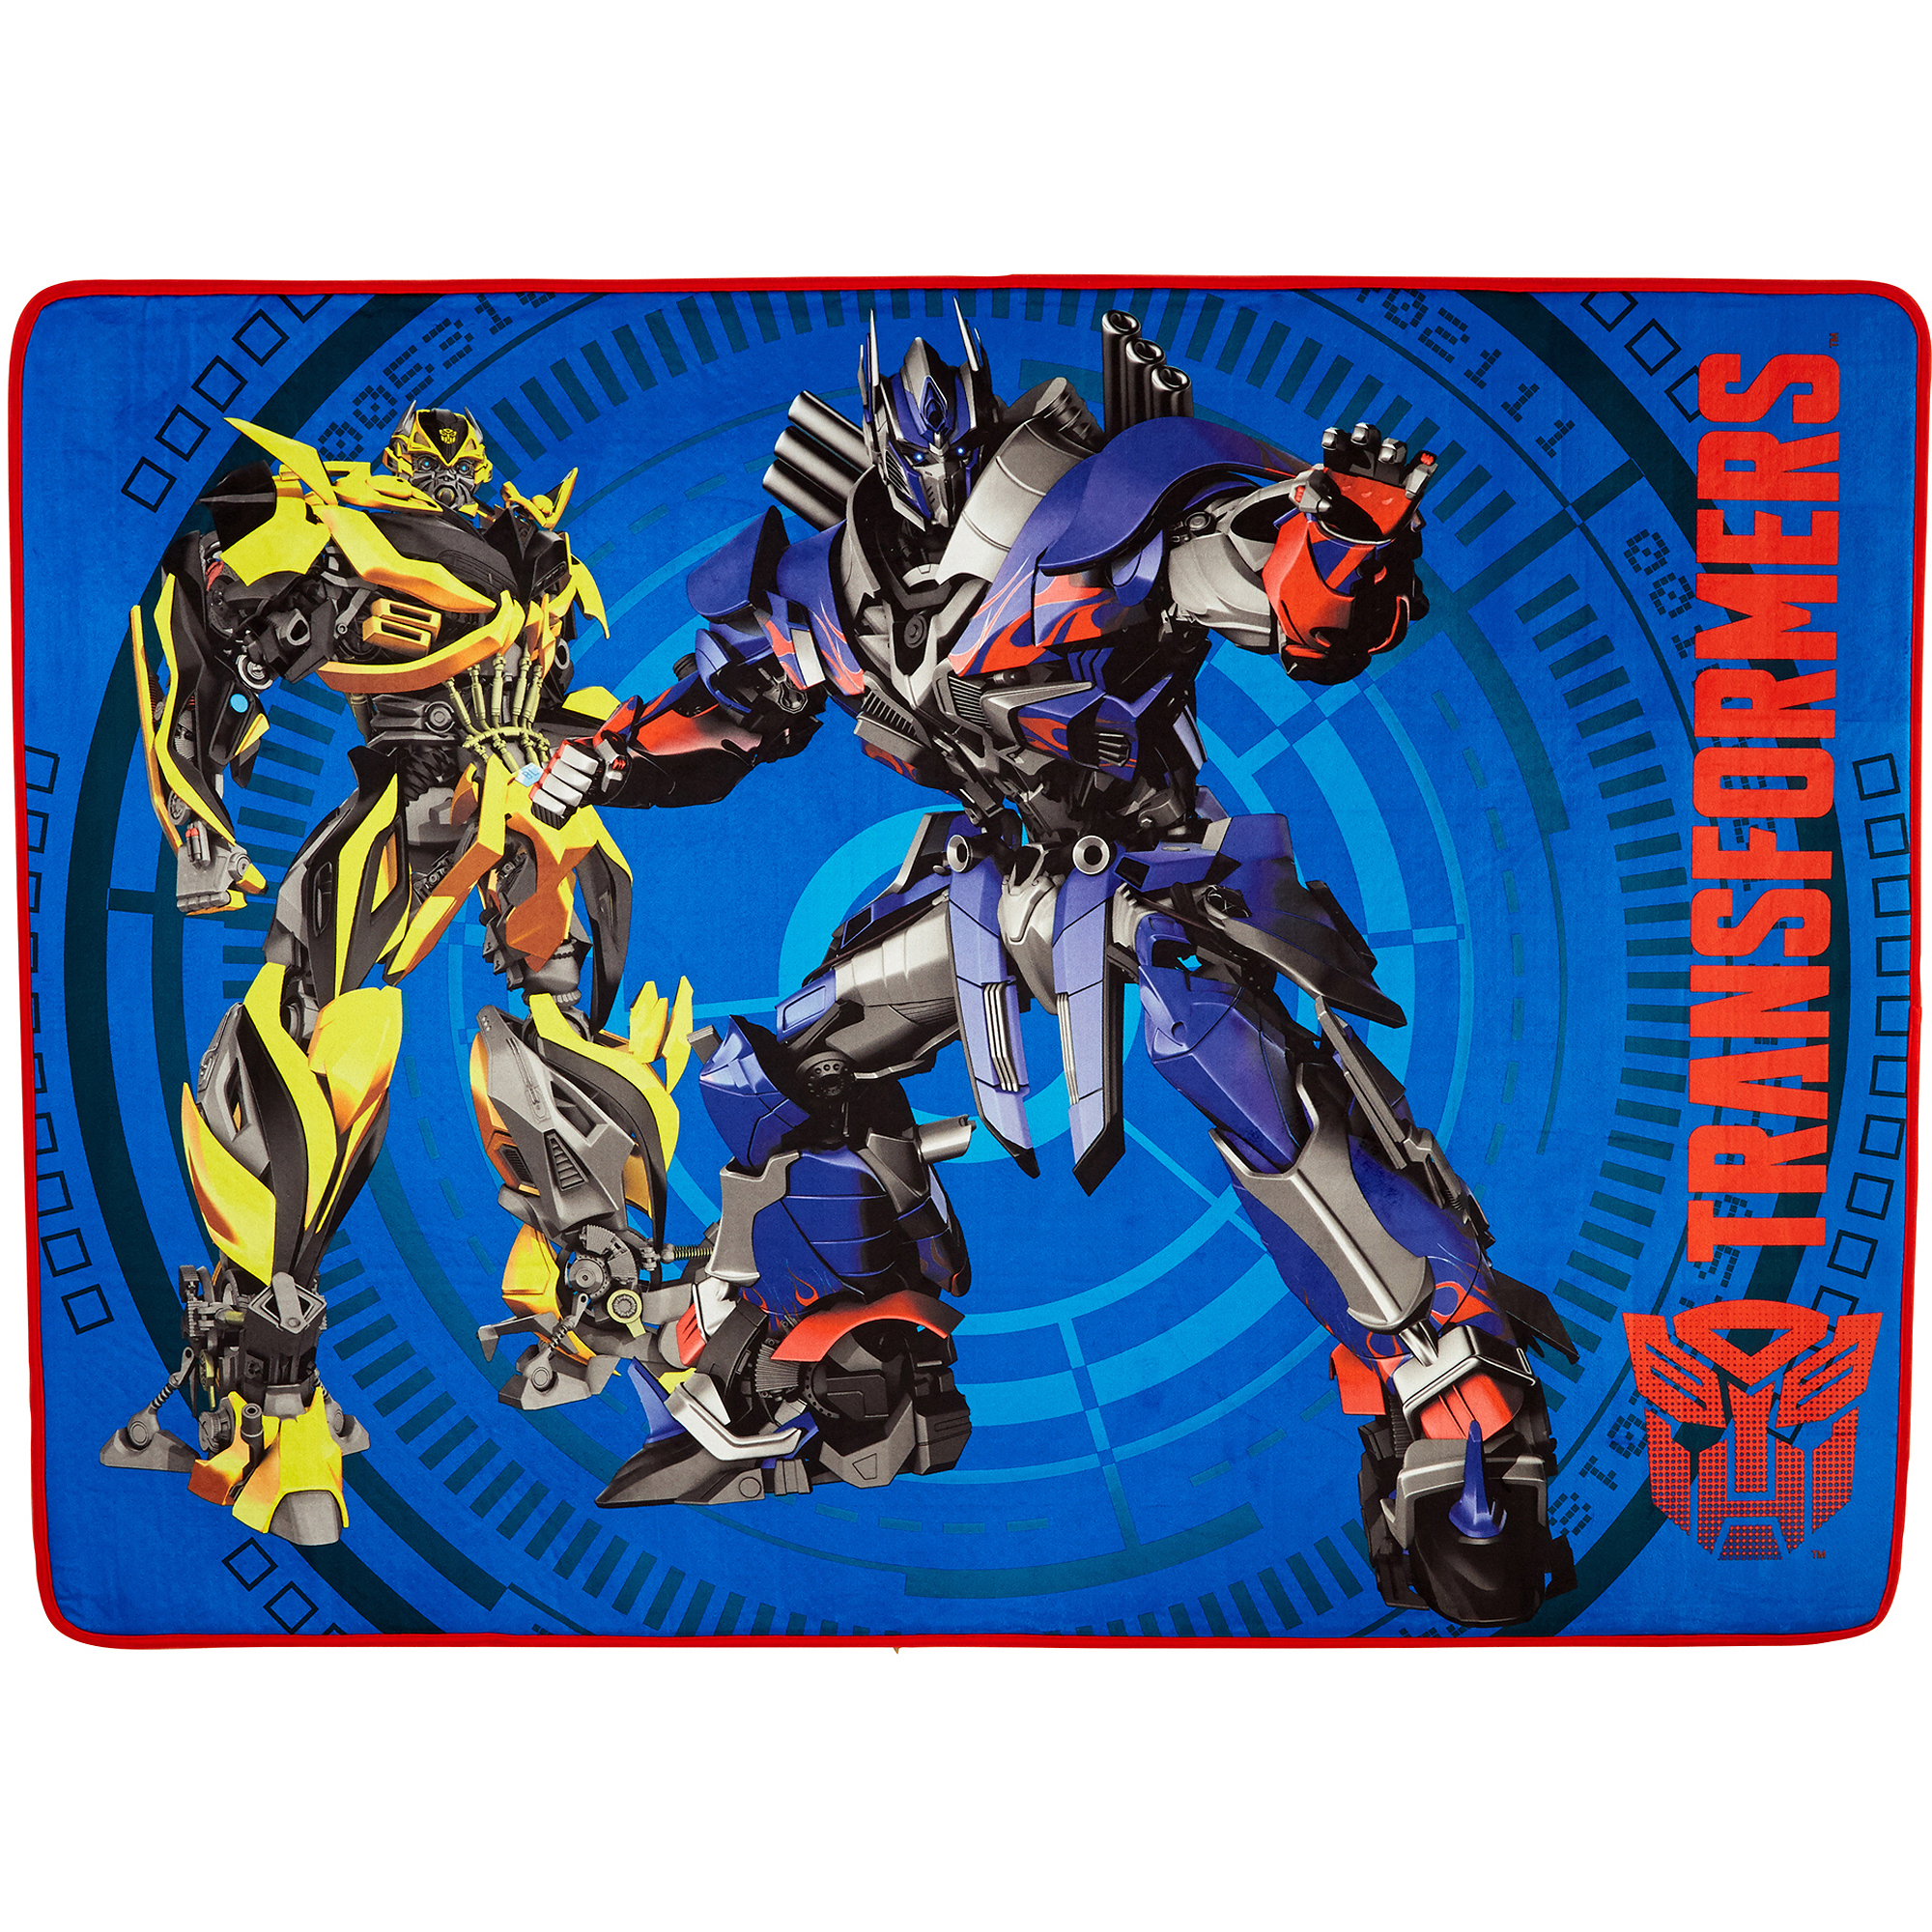 "Transformers Fun Polyester Kids Accent Rug, 40"" x 56"""